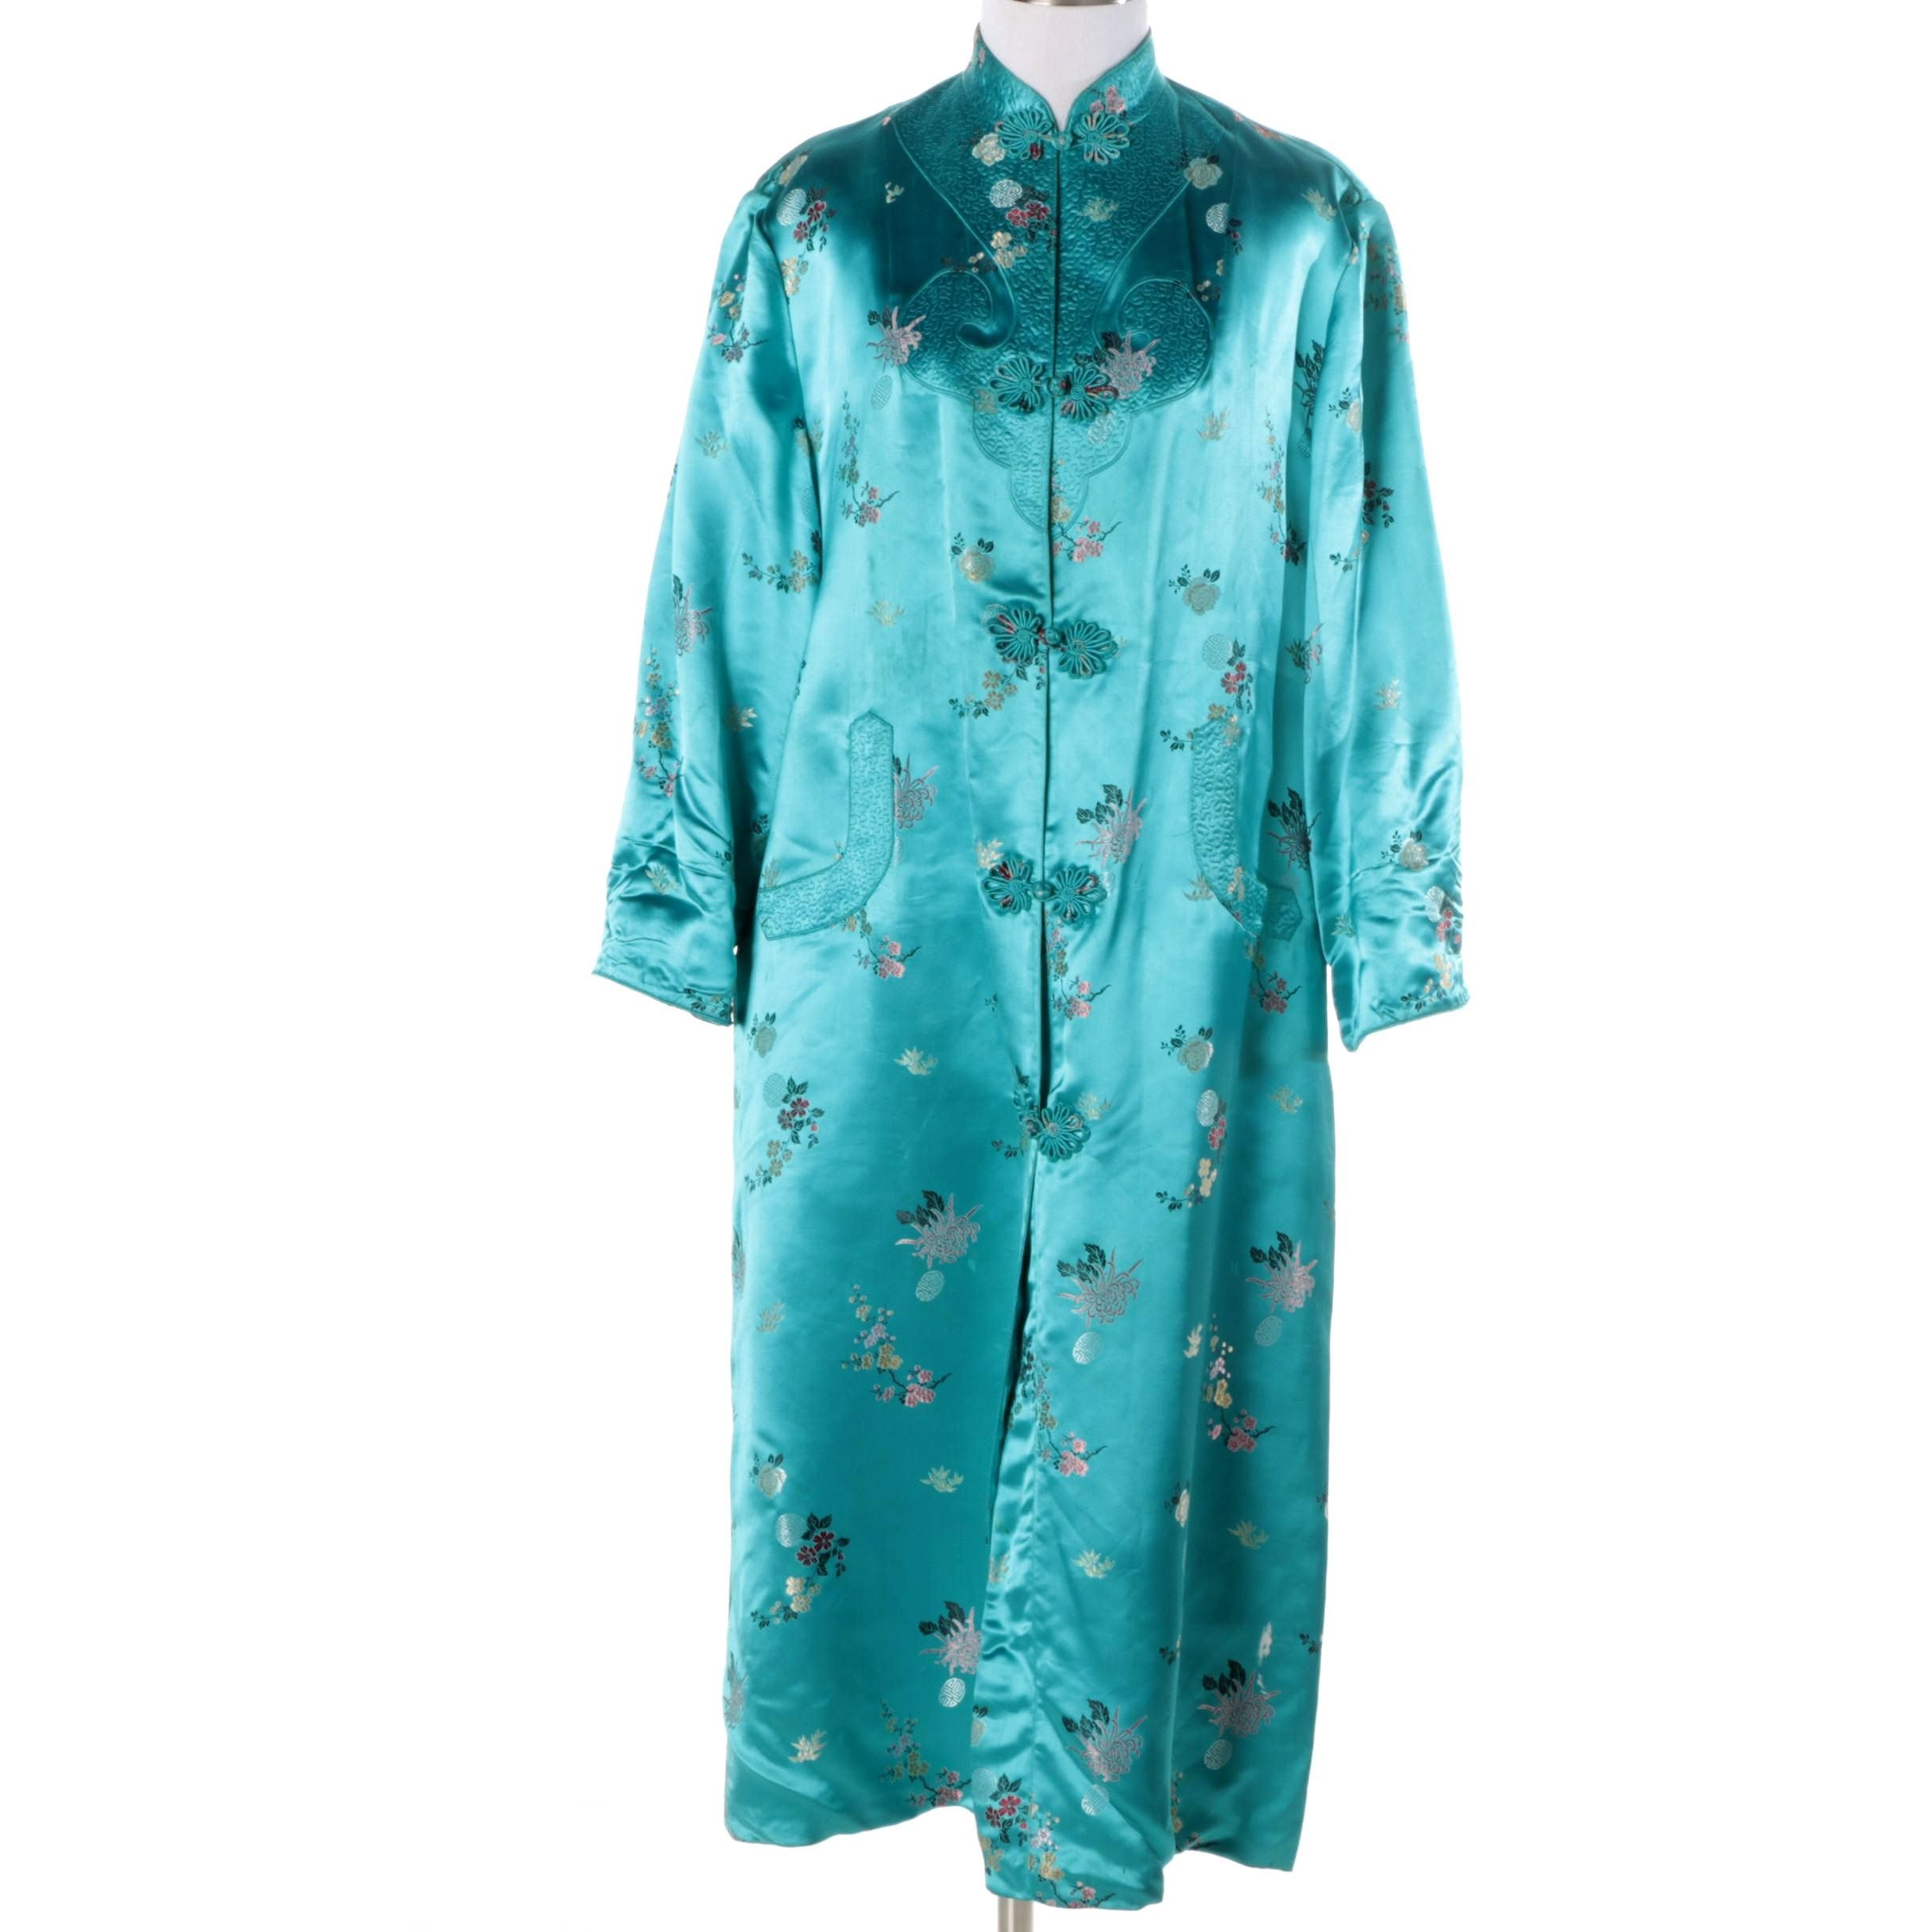 Vintage Chinese Style Brocade Robe by Mulchands Singapore